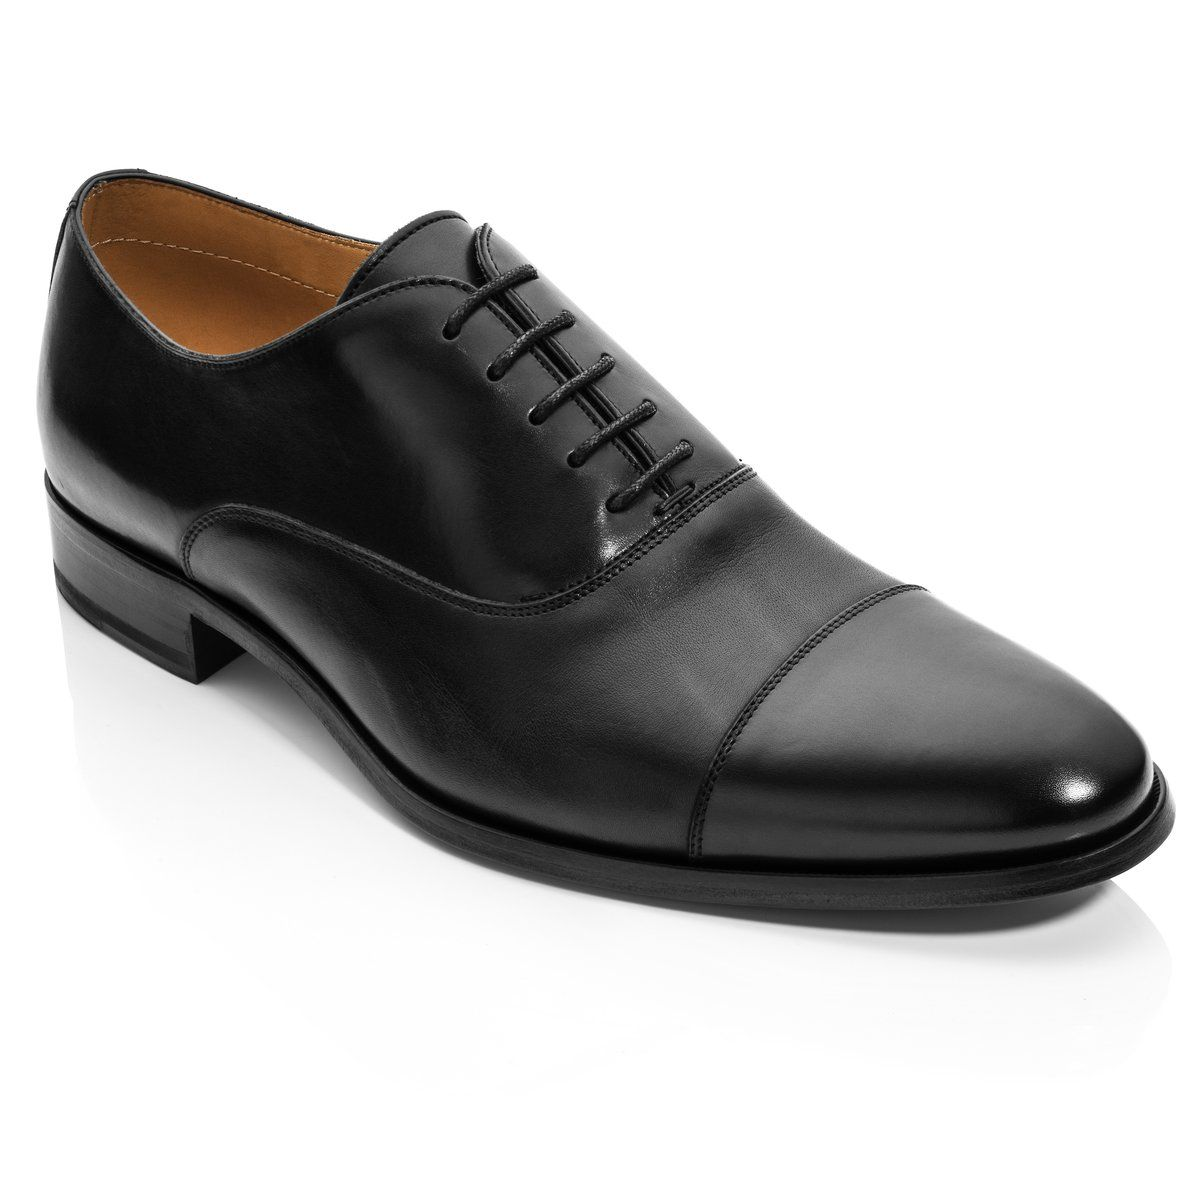 Forley Black Dress Shoes Men To Boot New York Dress Shoes [ 1200 x 1200 Pixel ]